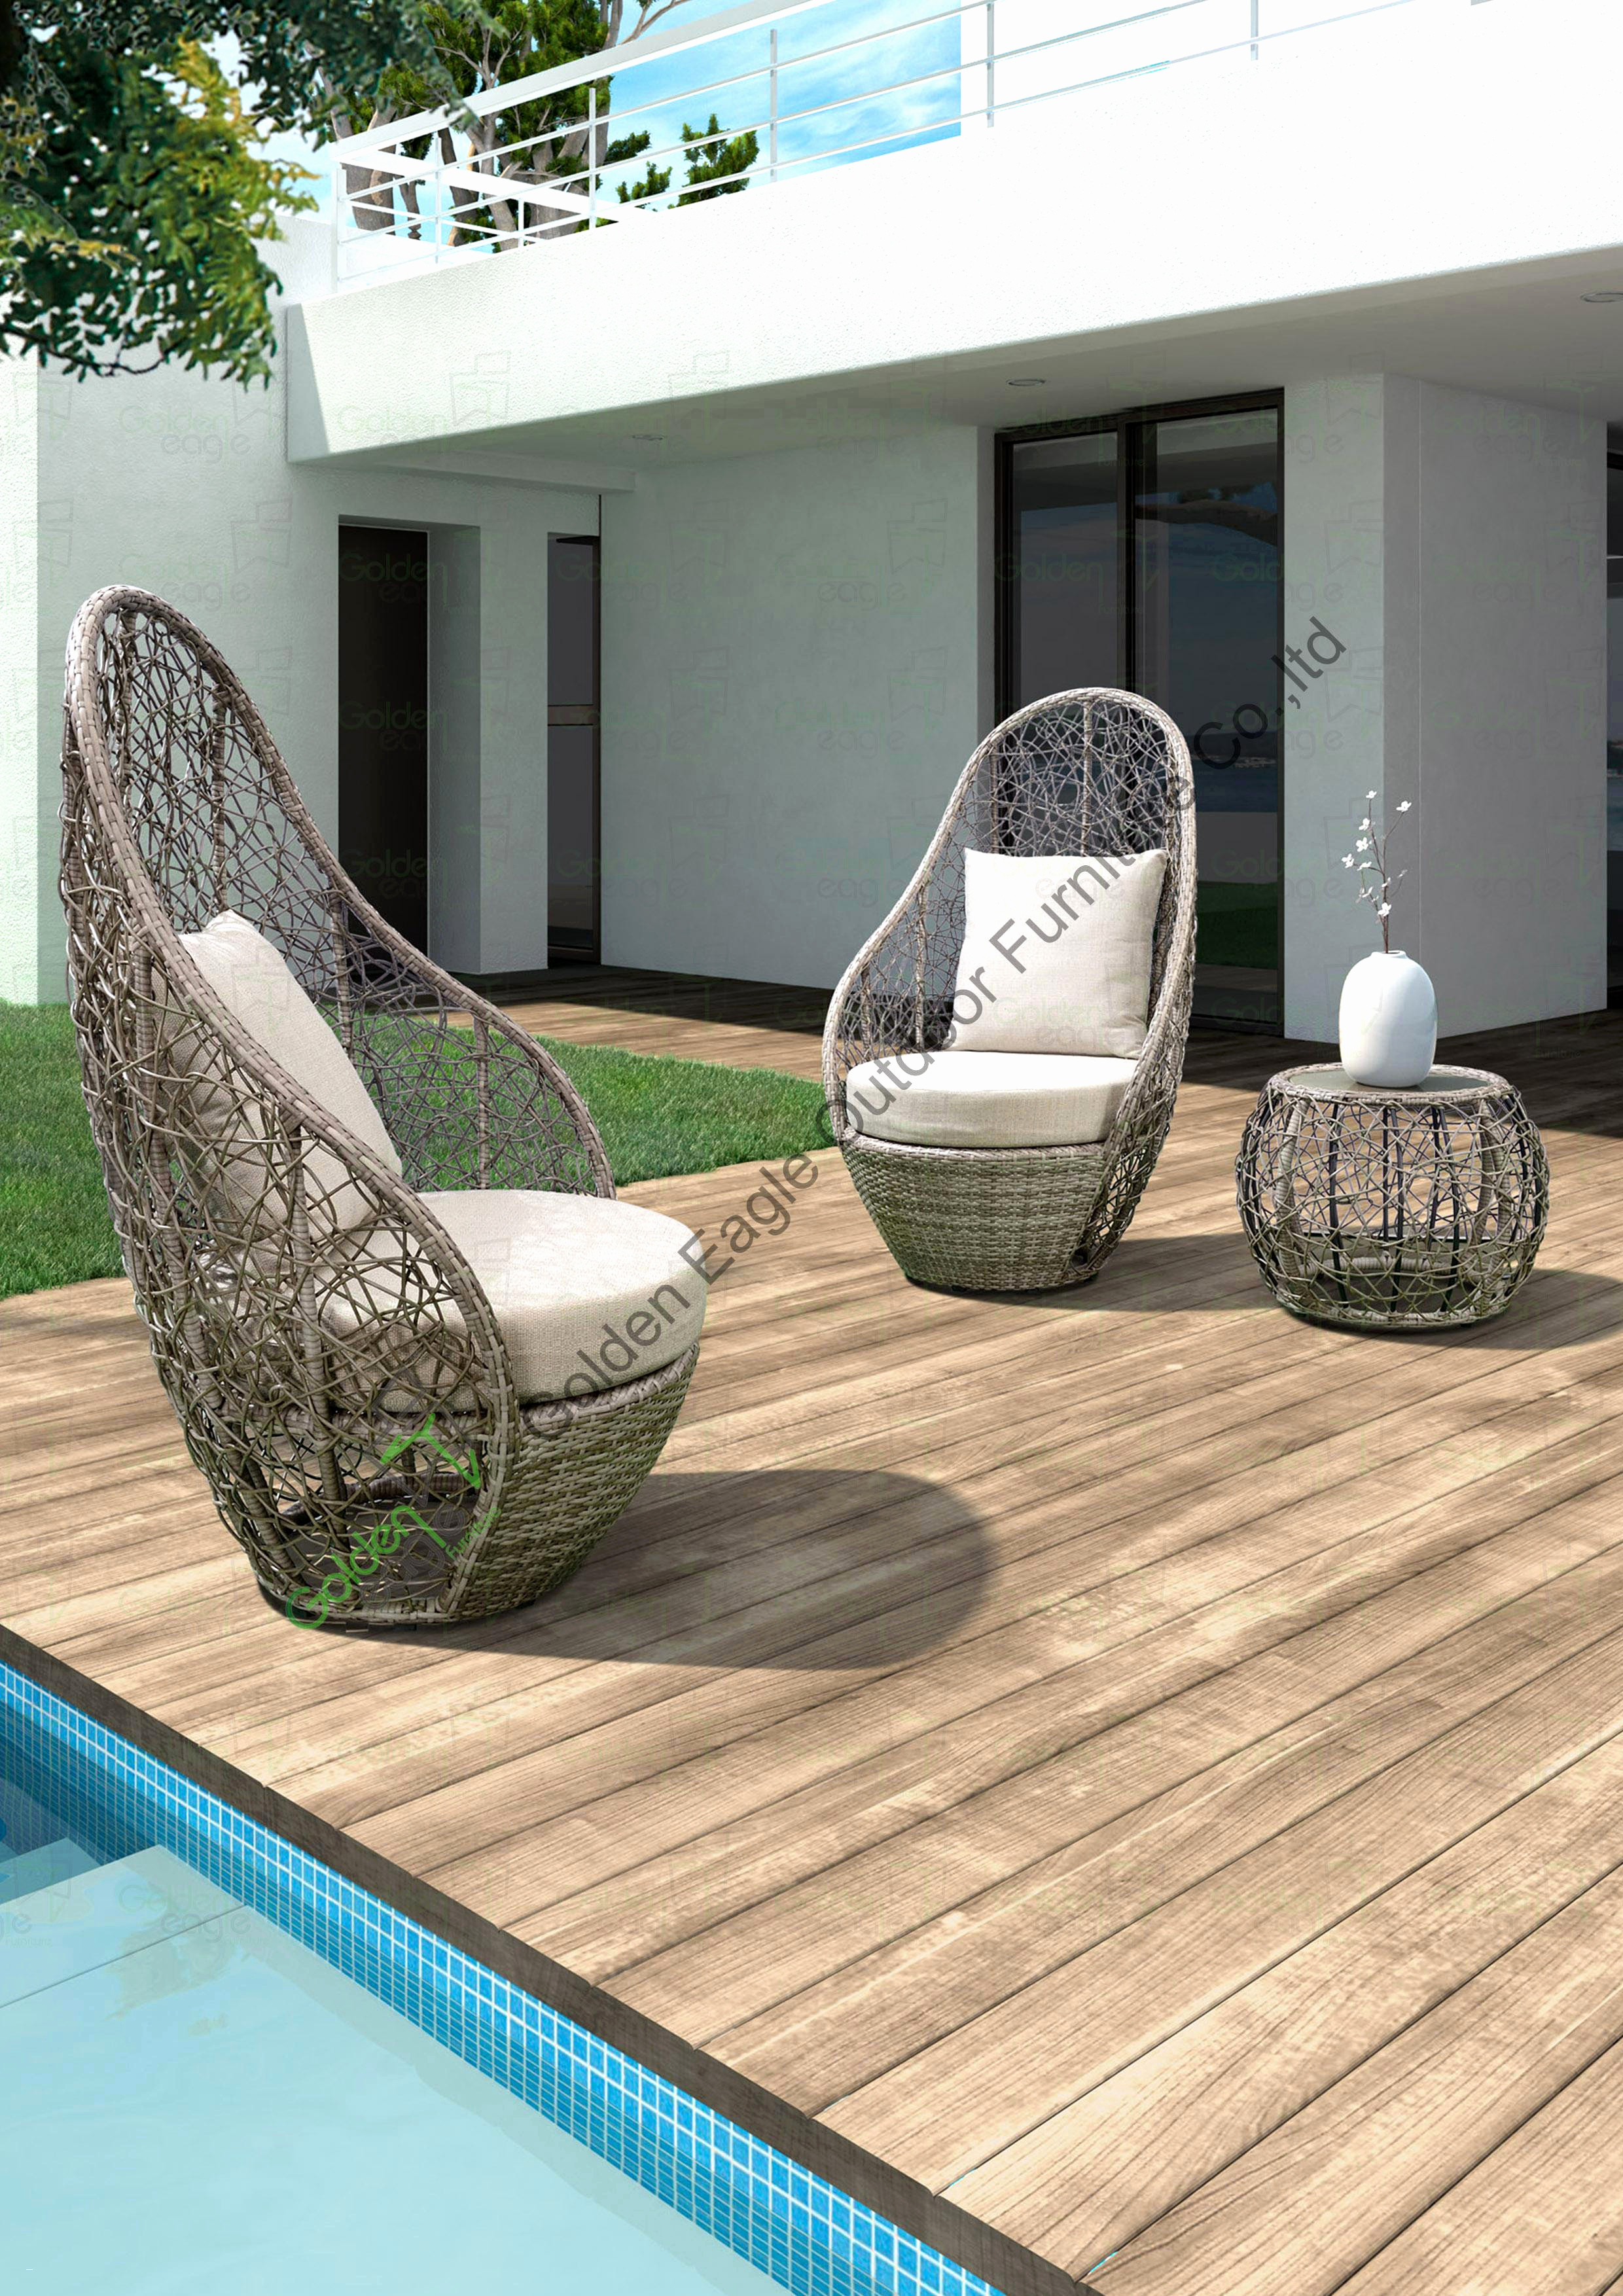 hardwood flooring canada of flooring supply store floor plan ideas throughout az patio best learning patio beautiful patio loveseat 0d tags awesome luxury az patio 50 lovely 50 best hardwood flooring